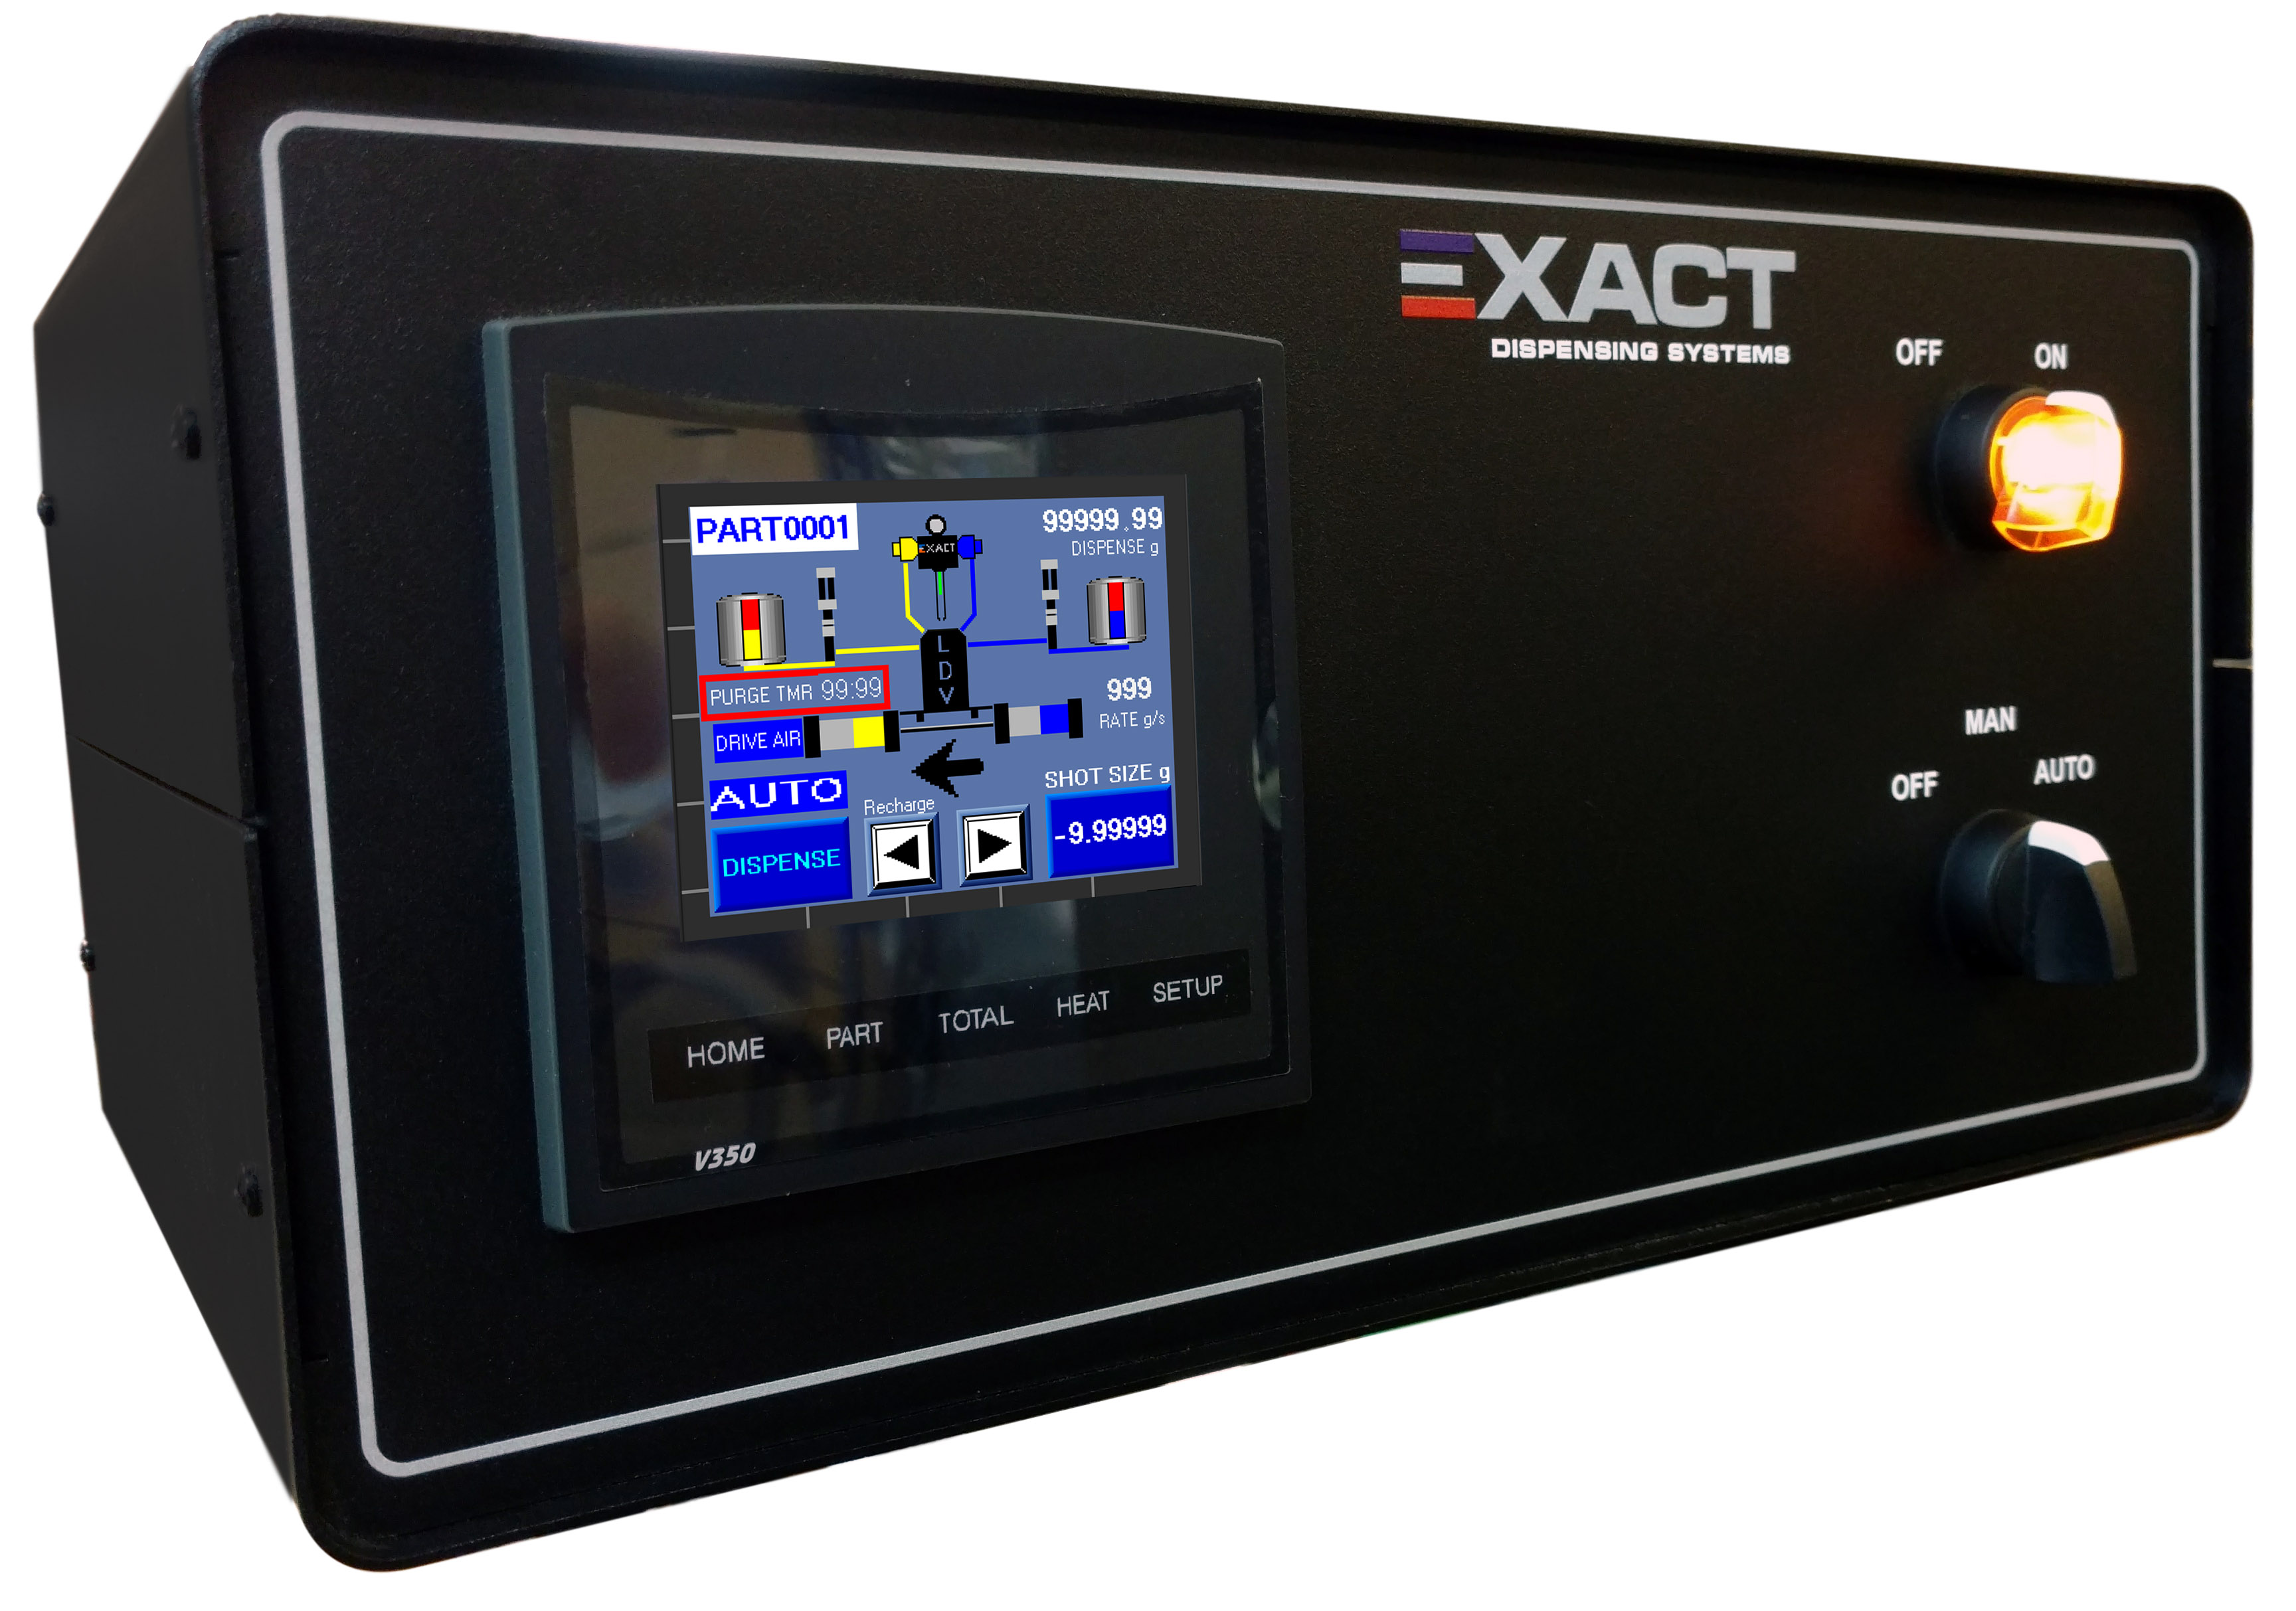 Color Touch Screen Controller for Meter Mix Solutions | EXACT Dispensing